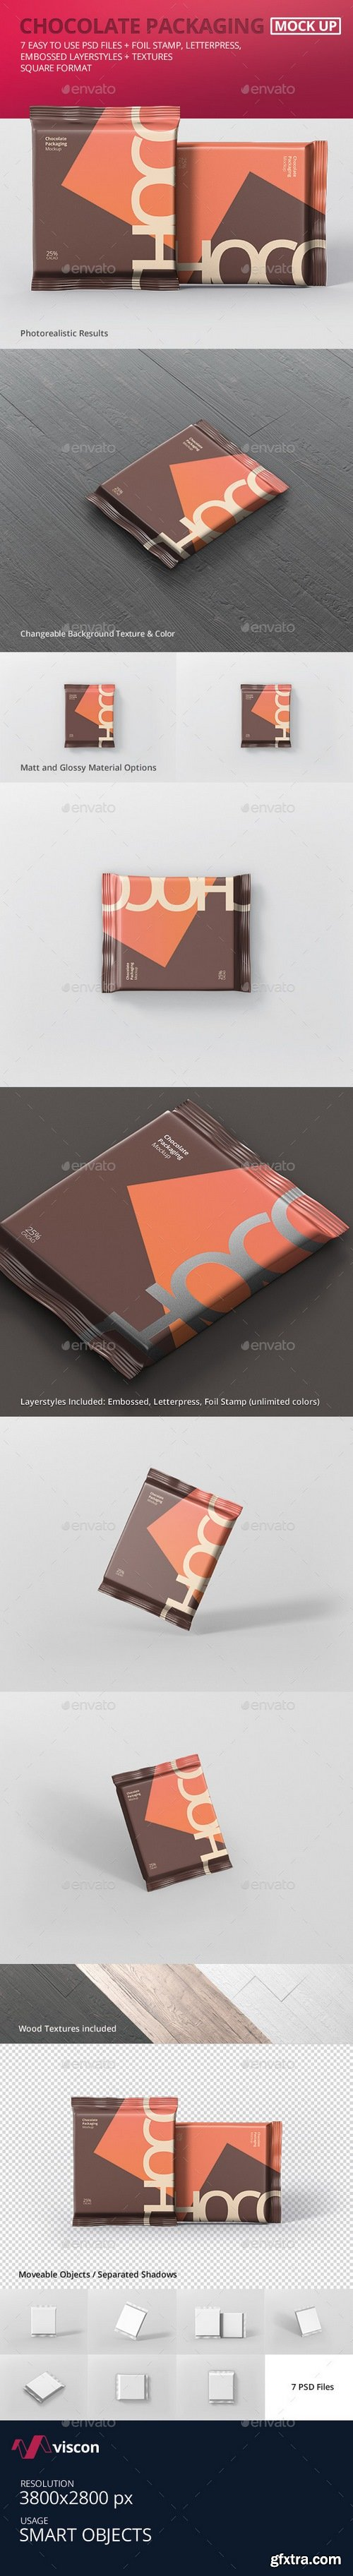 Graphicriver - Foil Chocolate Packaging Mockup - Square Size 21180593